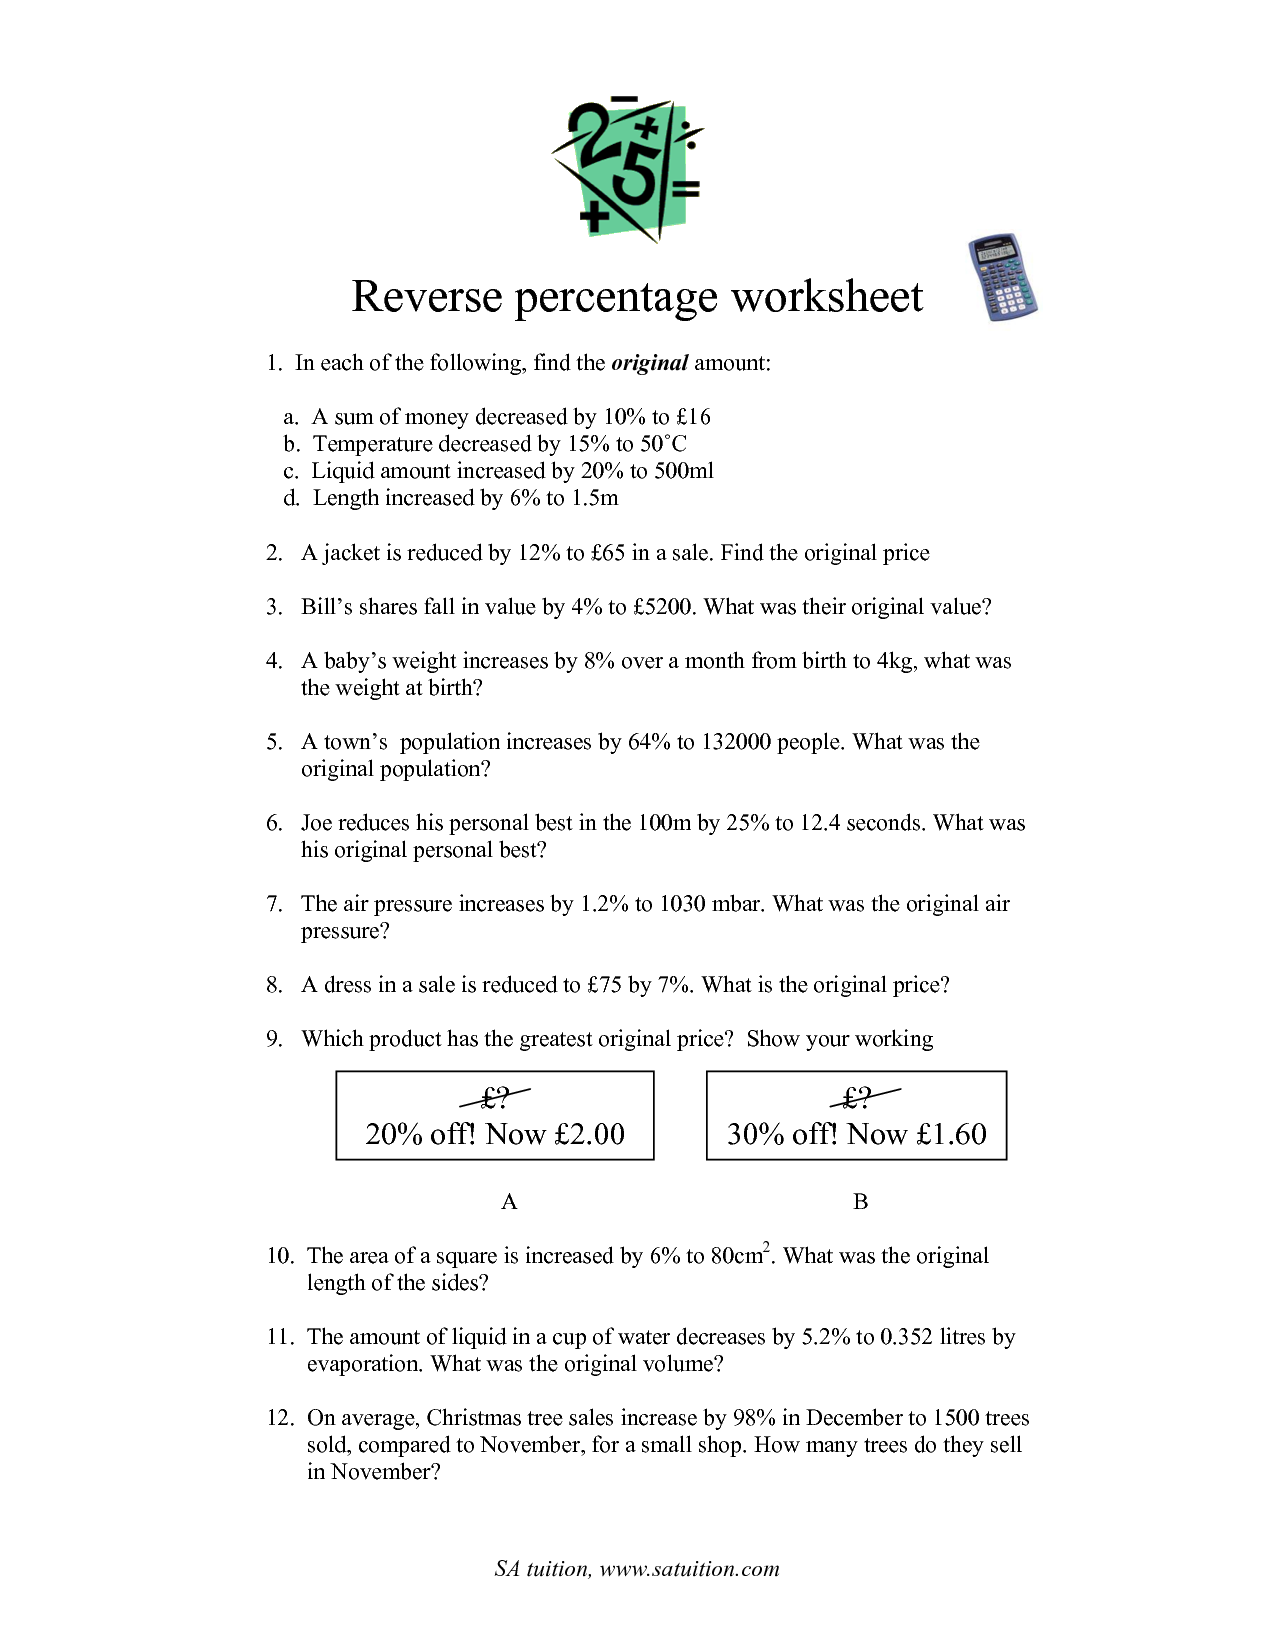 18 Best Images of Worksheet Finding Percent Tax  Percent Tax Tip Discount Word Problems